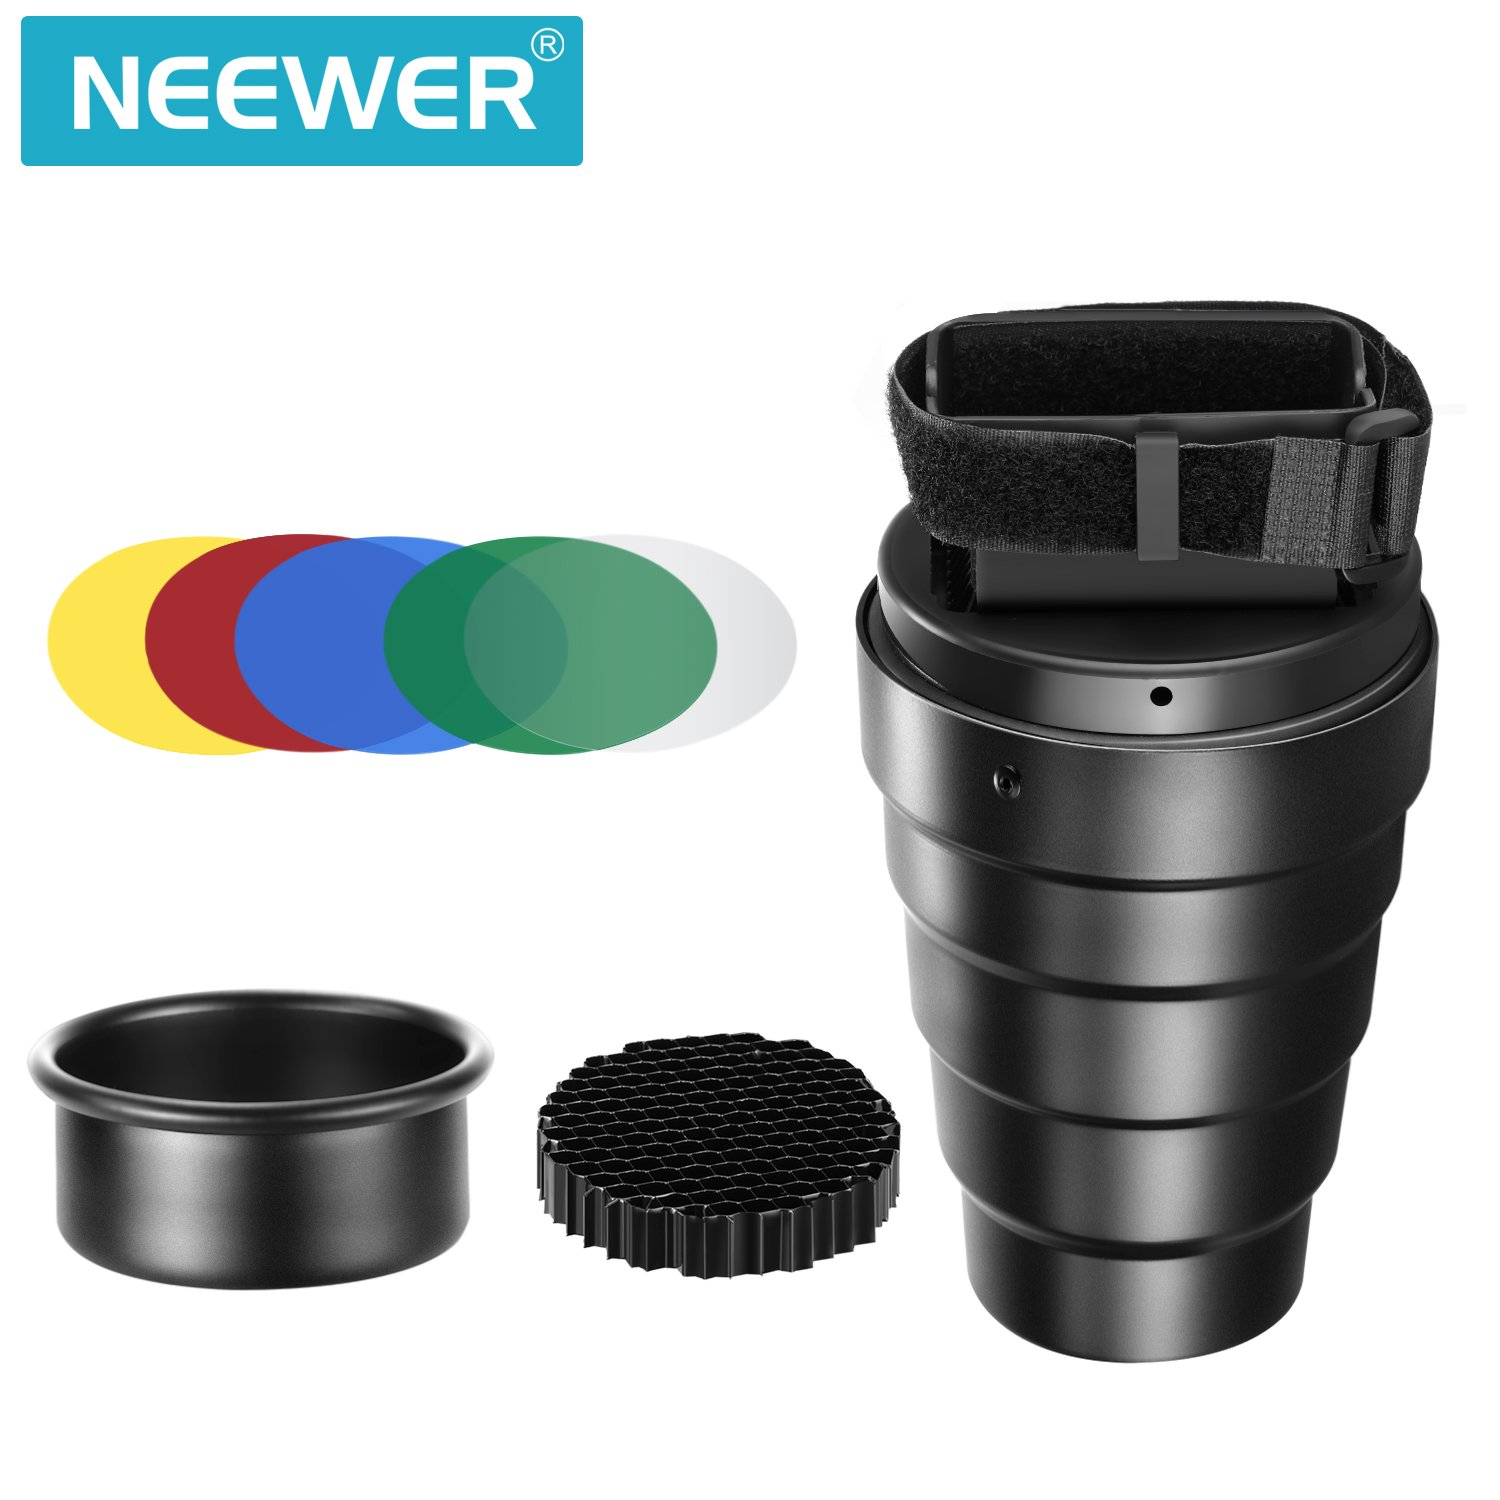 Neewer Aluminium Alloy Conical Snoot Kit with Honeycomb Grid and 5 Pieces Color Gel Filters for Canon Nikon TT560 NW561 NW562 NW565 NW620 NW630 NW680 NW670 750II NW910 NW880 Flash Speedlites by Neewer (Image #2)